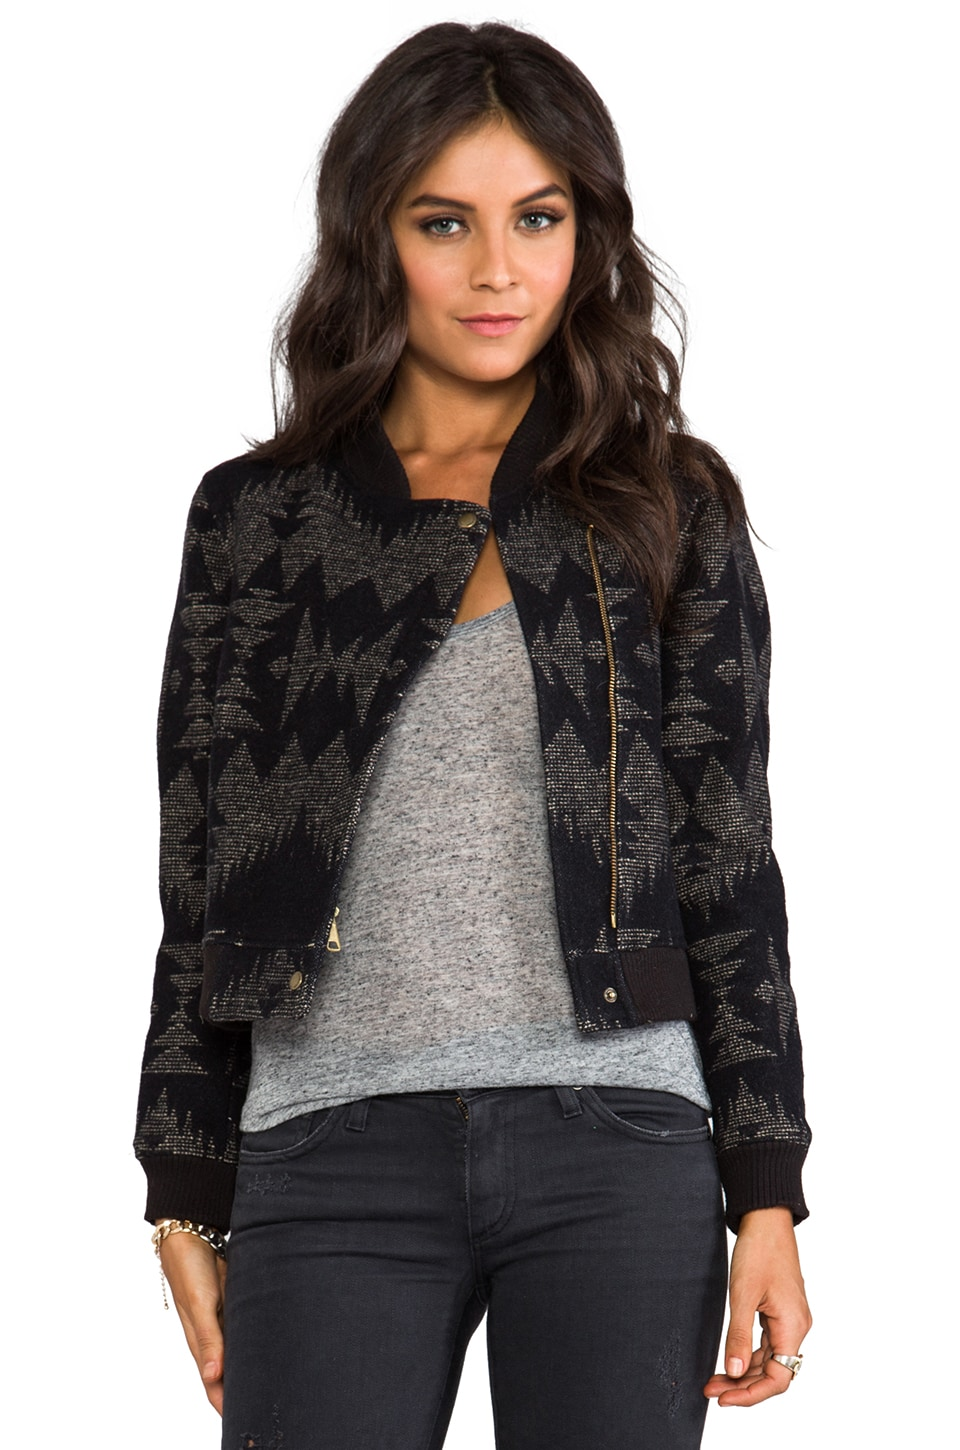 The Portland Collection by Pendleton Siletz Jacket in Black Sonora